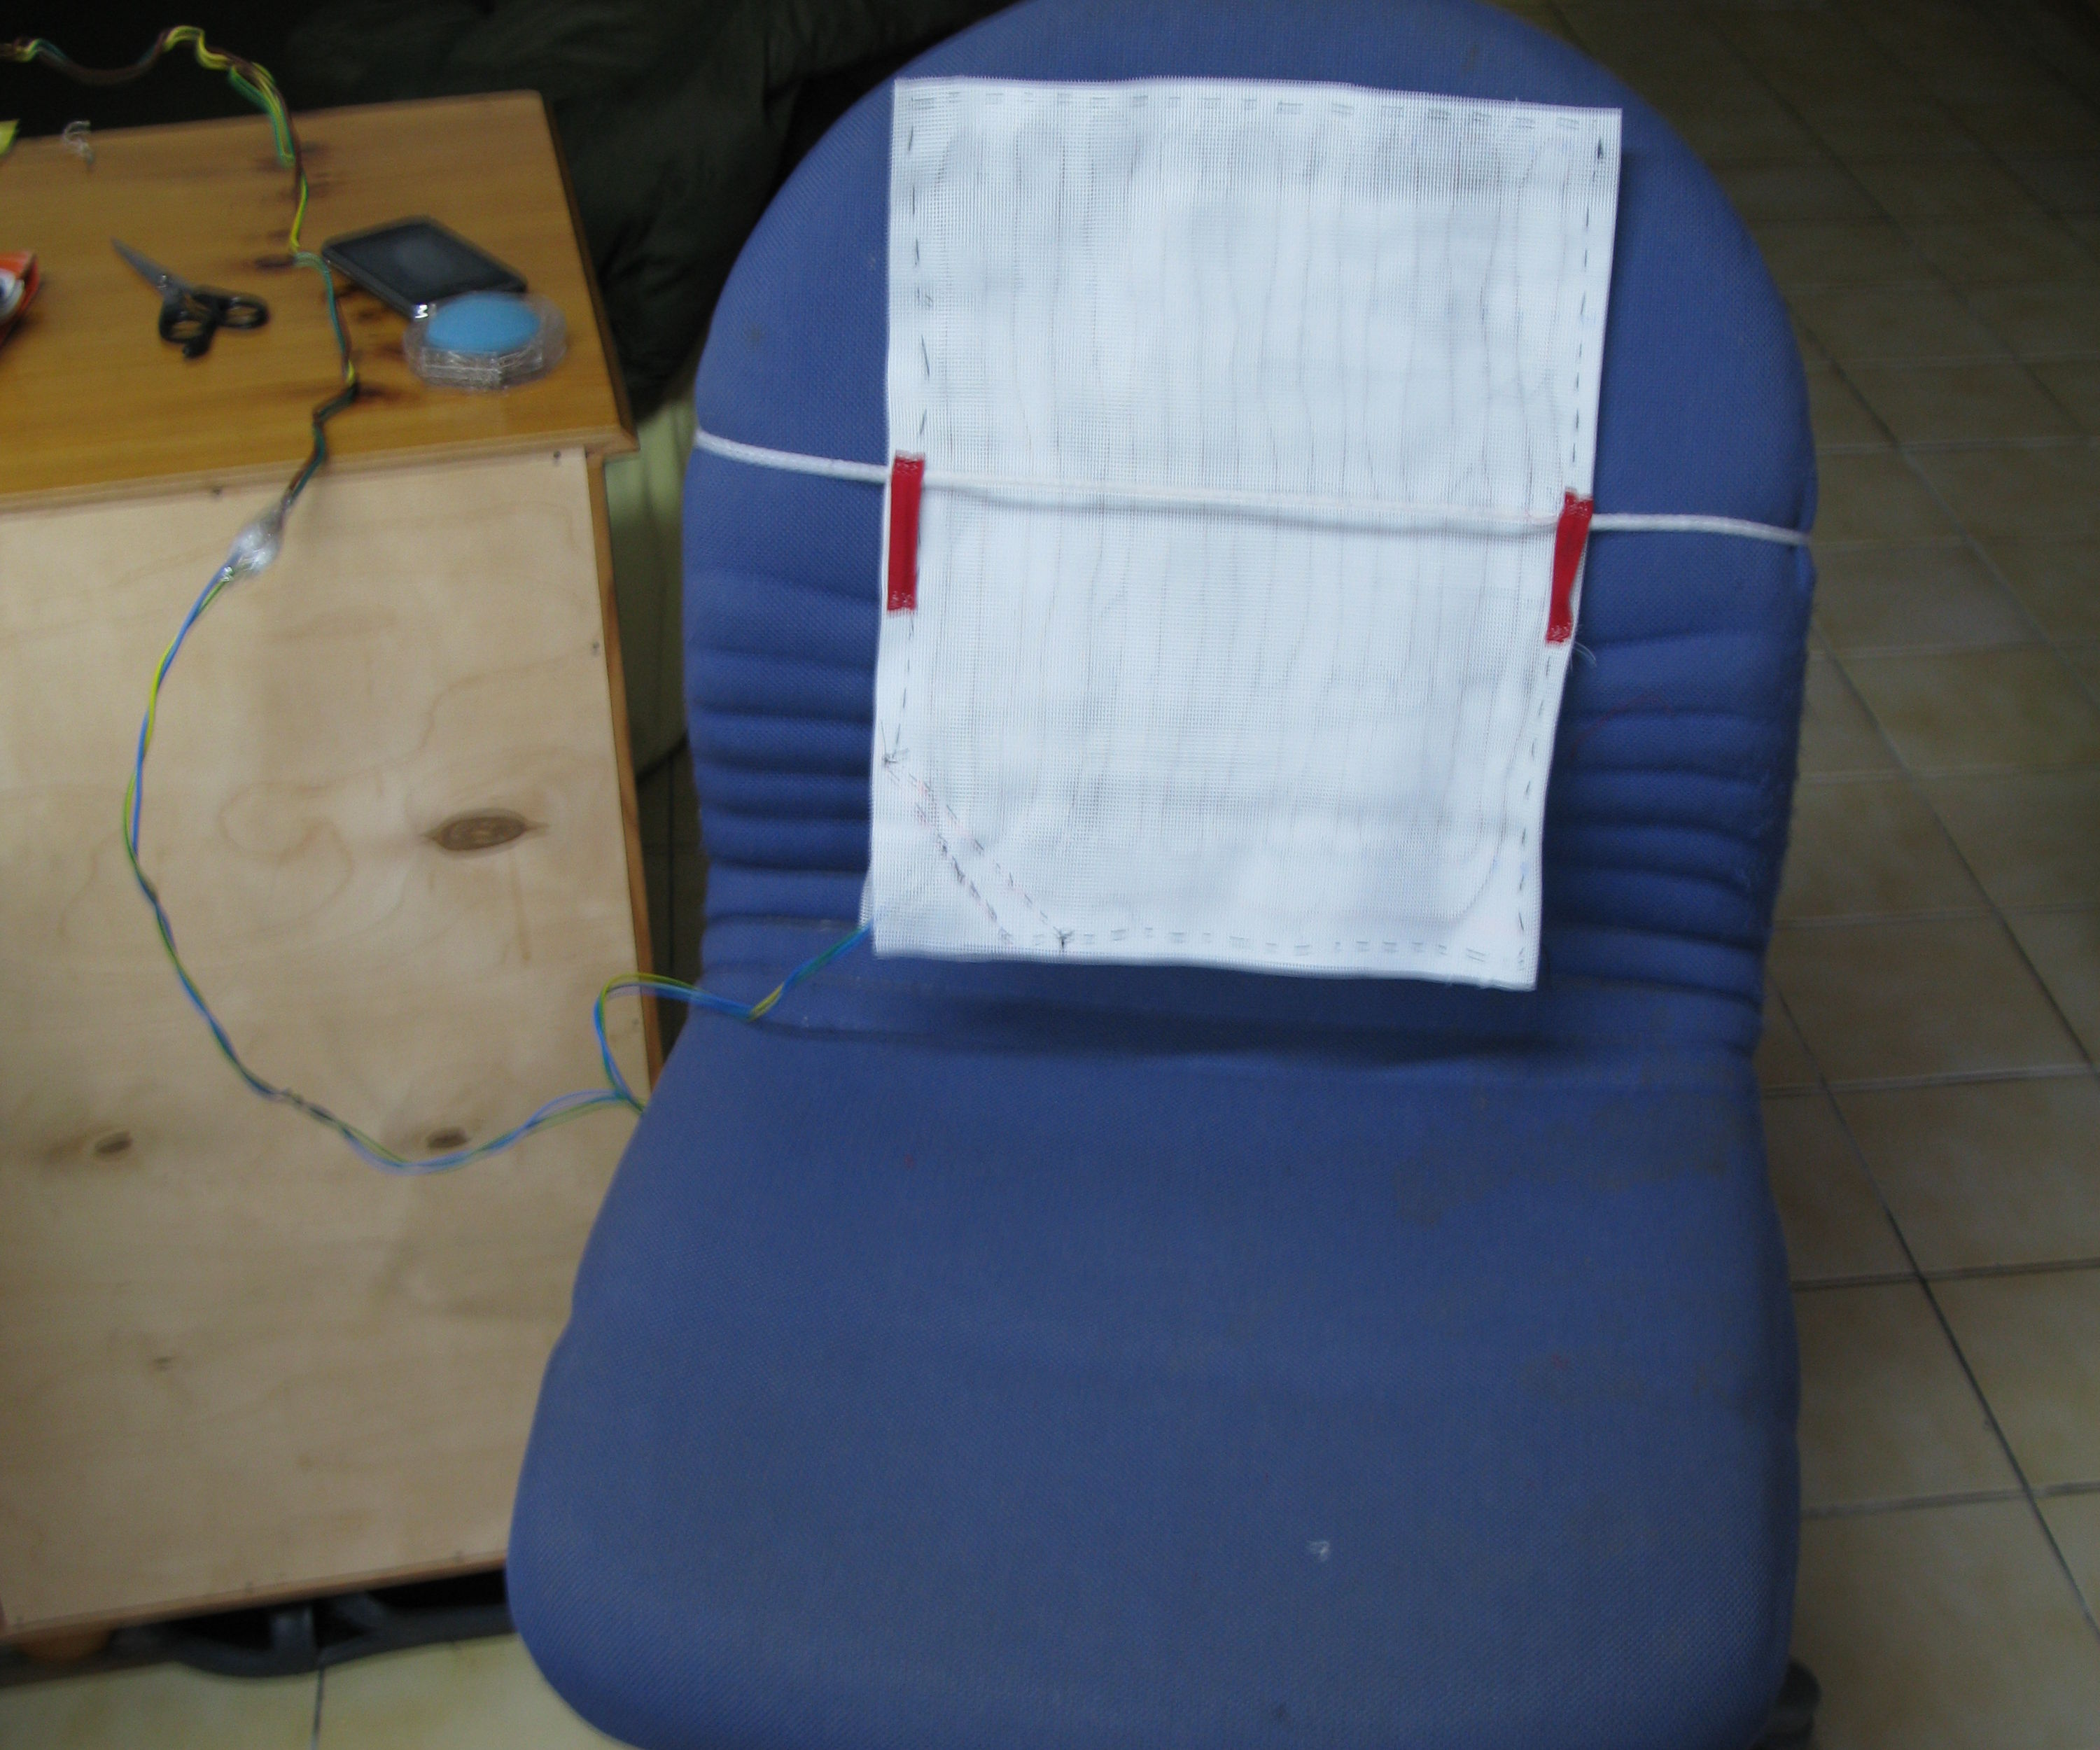 DIY Heating pad - (small electrical blanket)